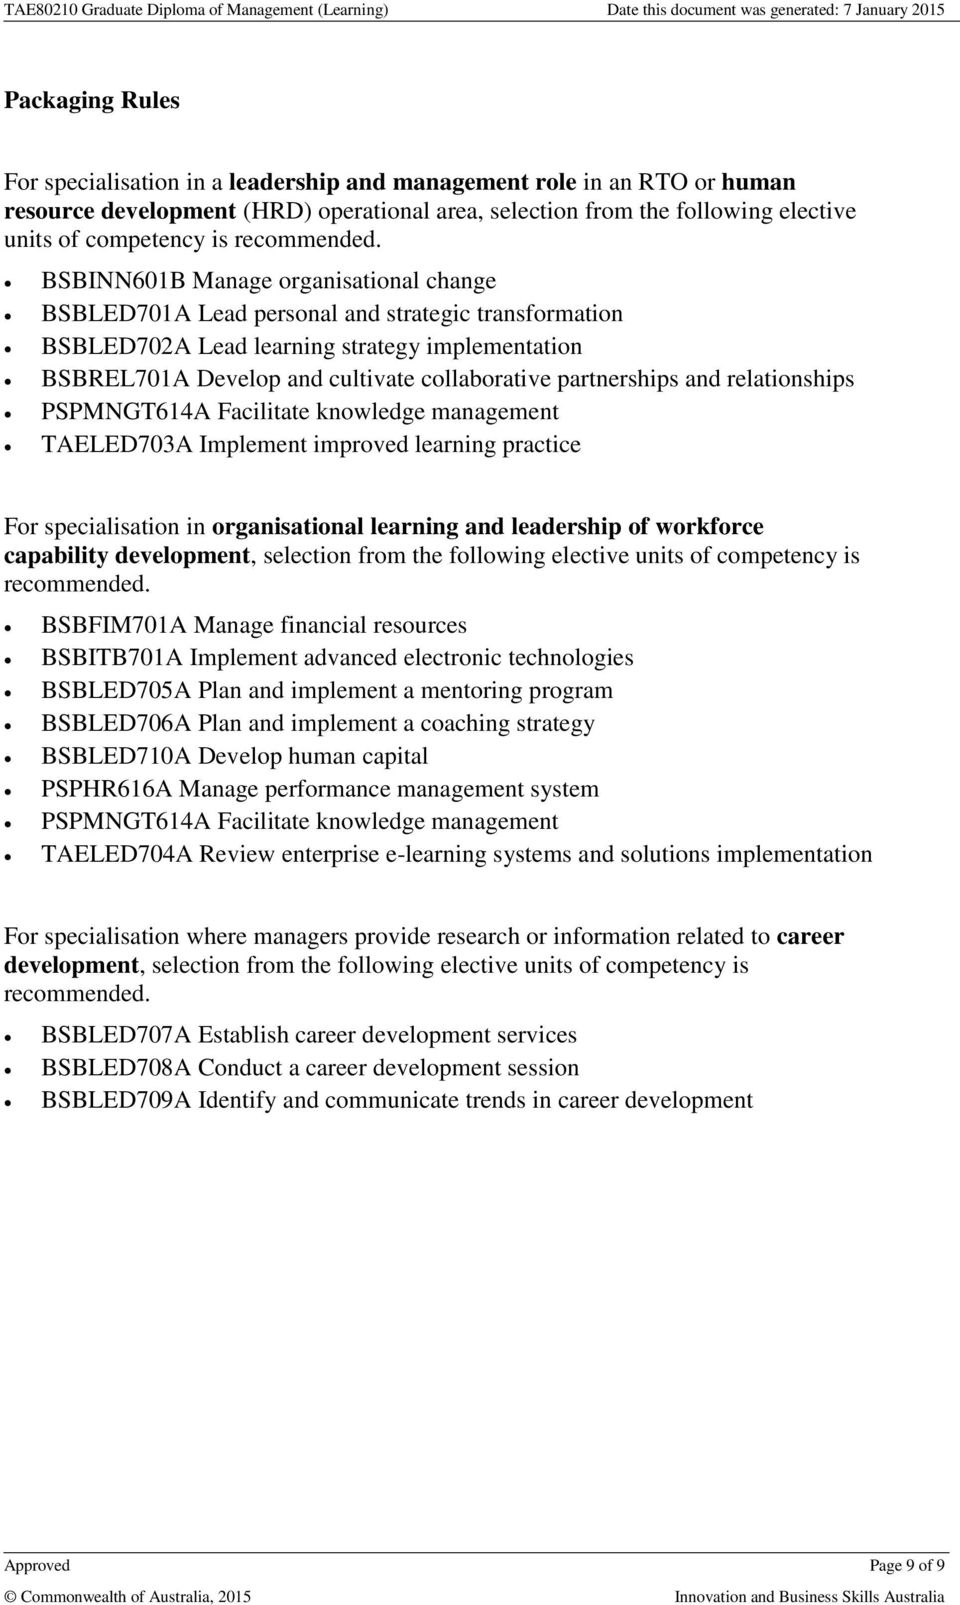 BSBINN601B Manage organisational change BSBLED701A Lead personal and strategic transformation BSBLED702A Lead learning strategy implementation BSBREL701A Develop and cultivate collaborative